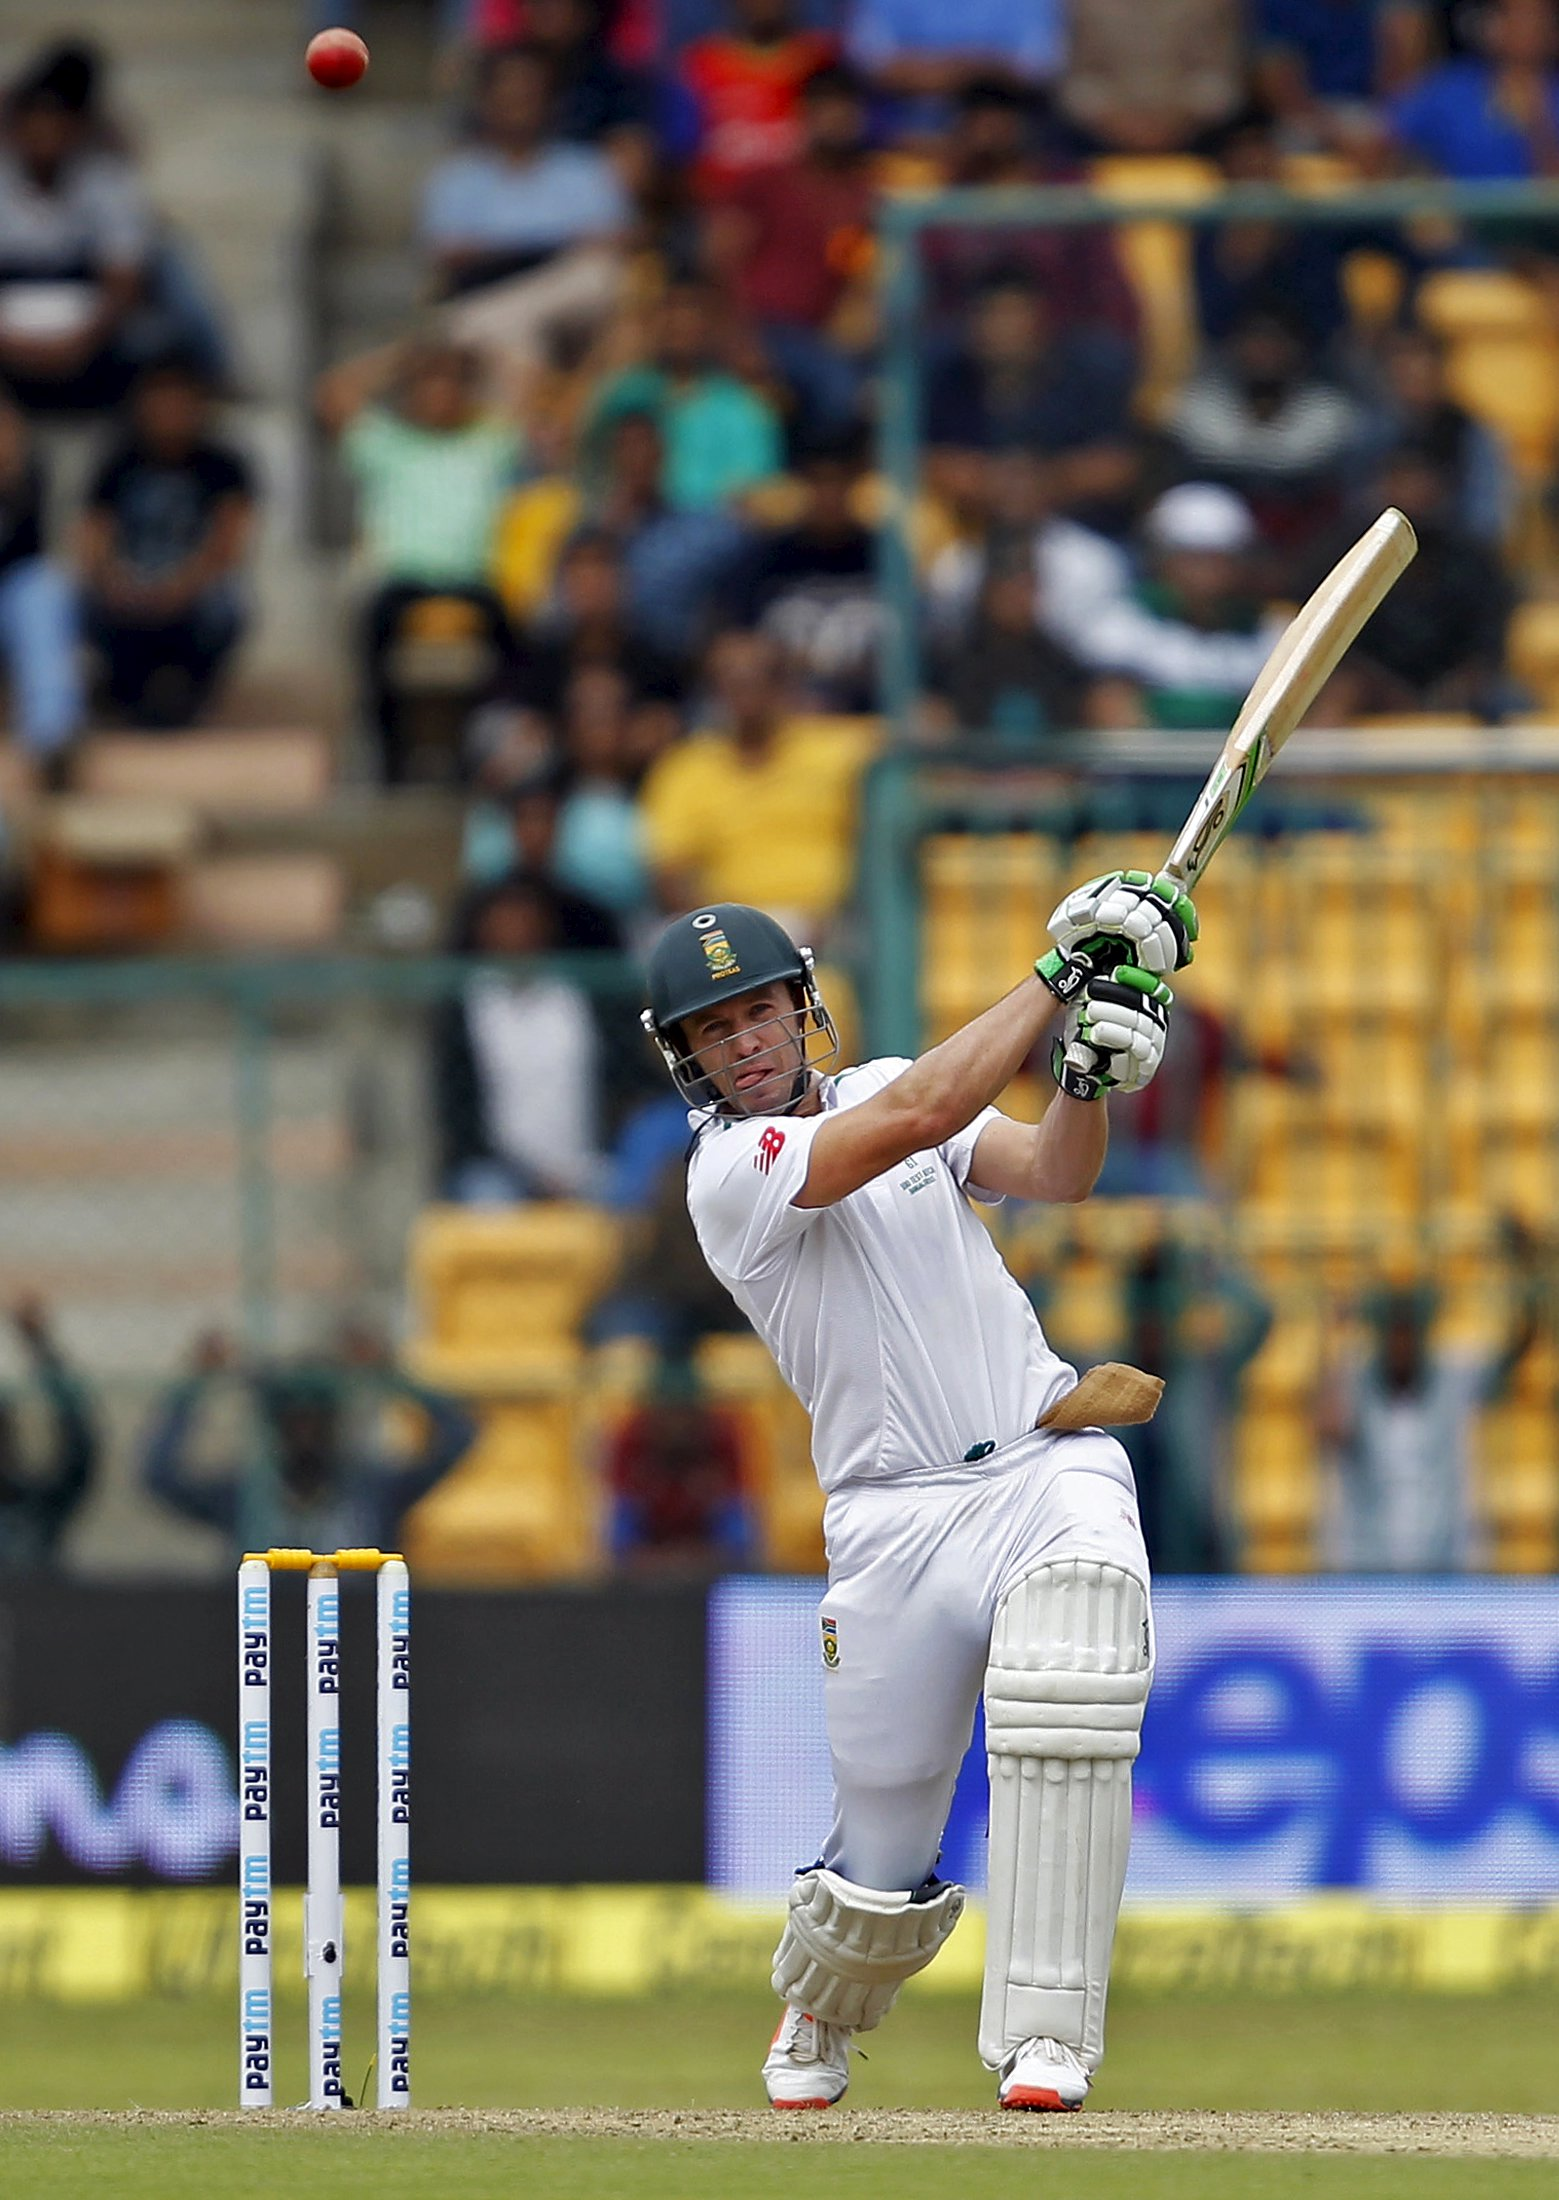 South Africa's AB de Villiers plays a shot on the first day of their second cricket test match against India in Bengaluru, India, November 14, 2015. Photo: Reuters